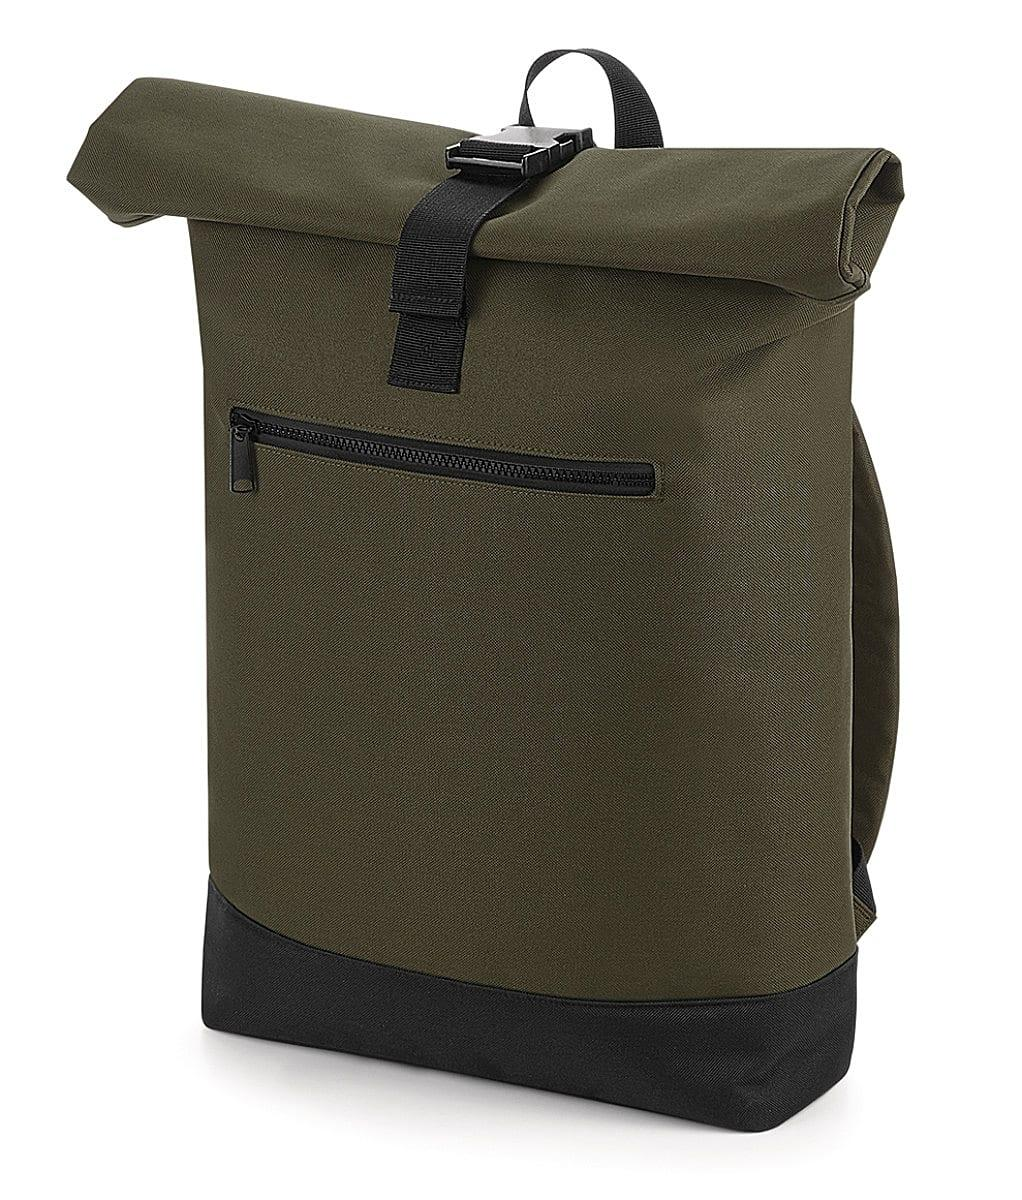 Bagbase Roll-Top Backpack in Military Green (Product Code: BG855)